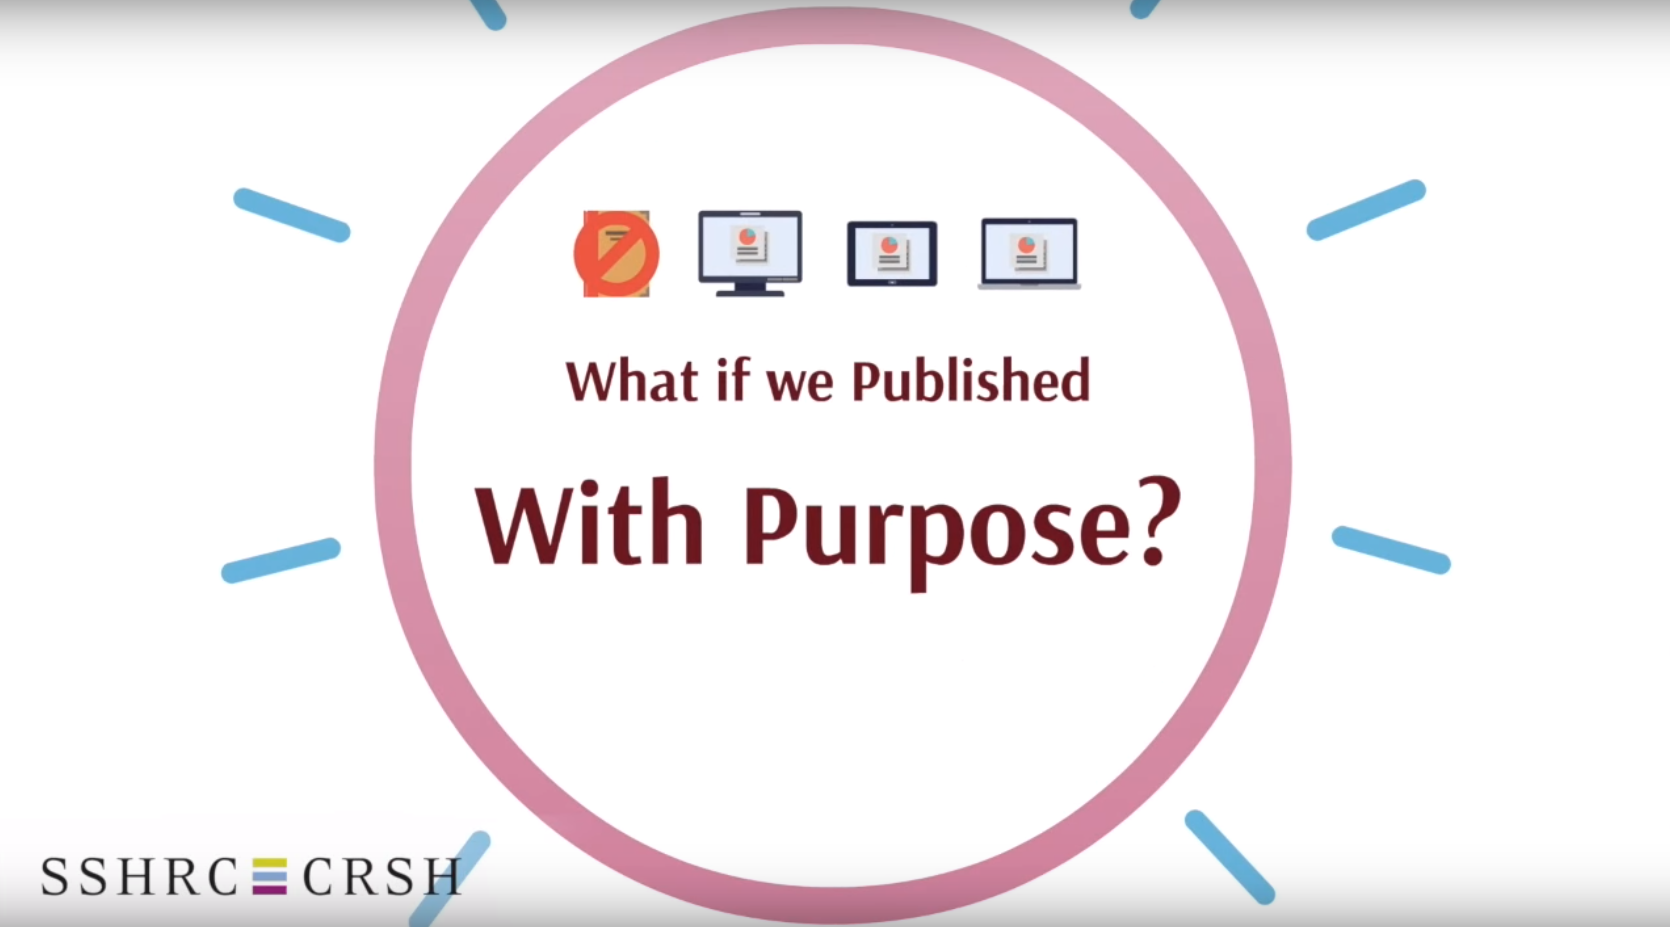 Publishing with purpose